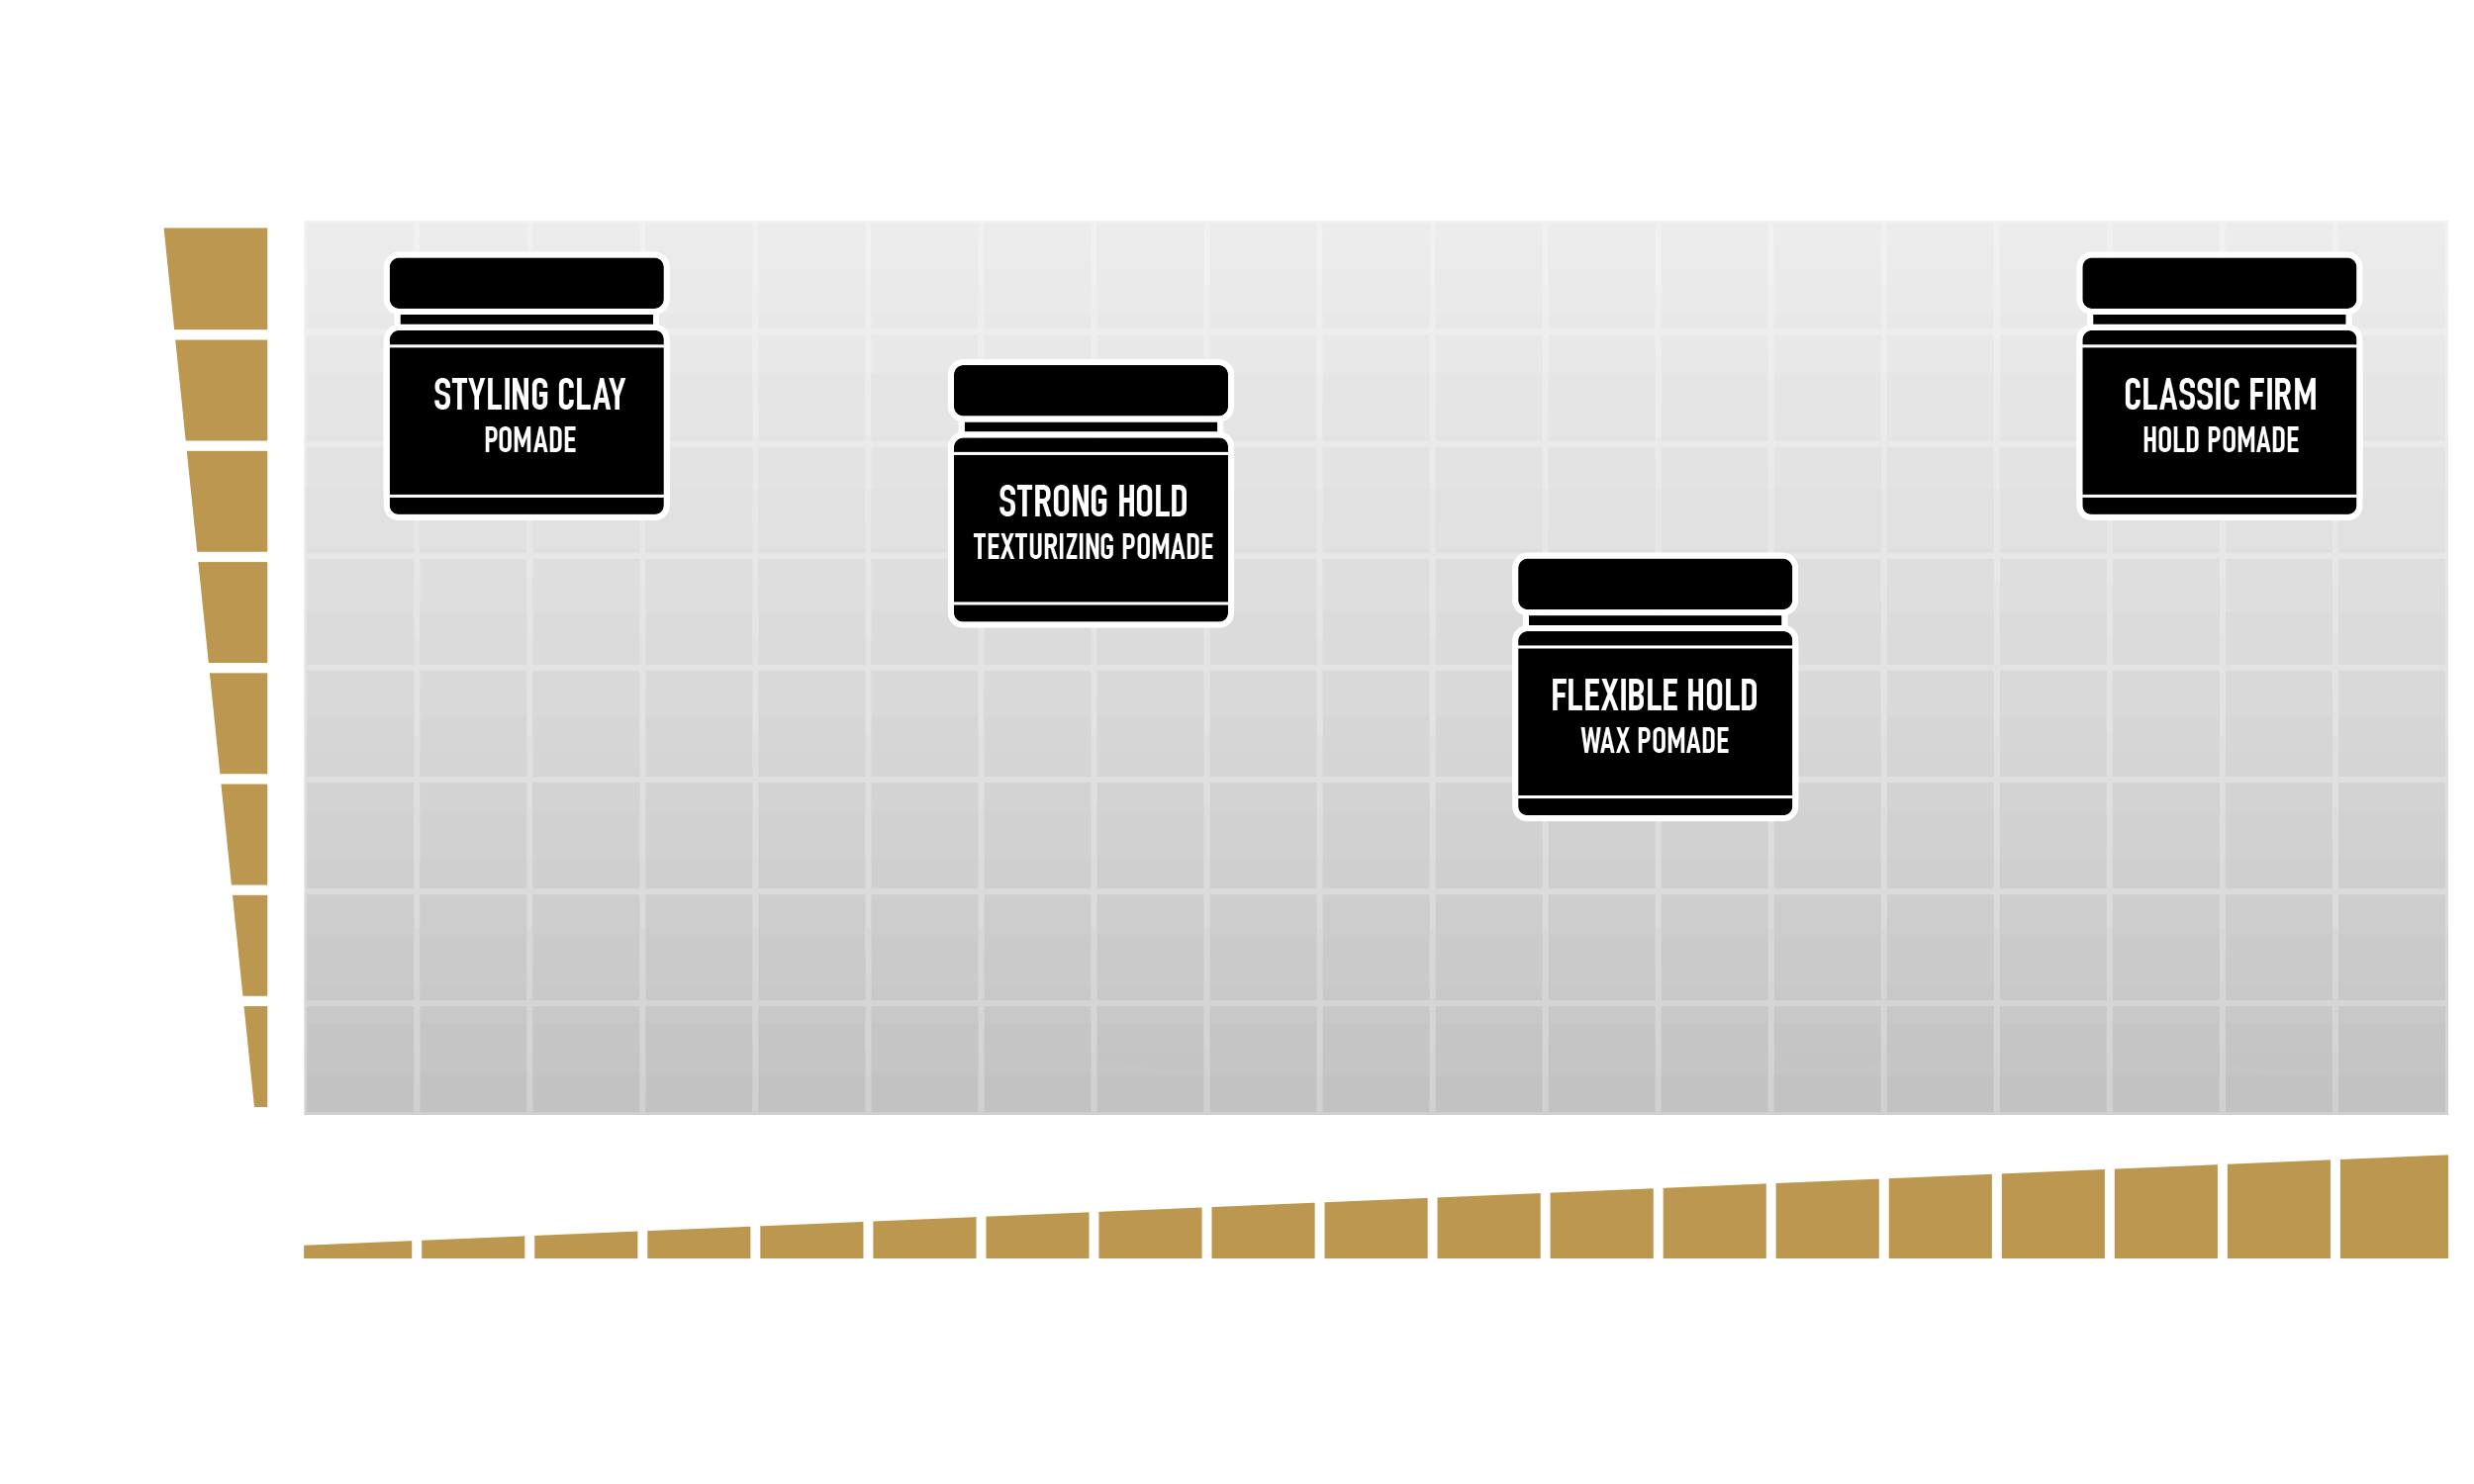 Brickell Pomade Comparison Guide